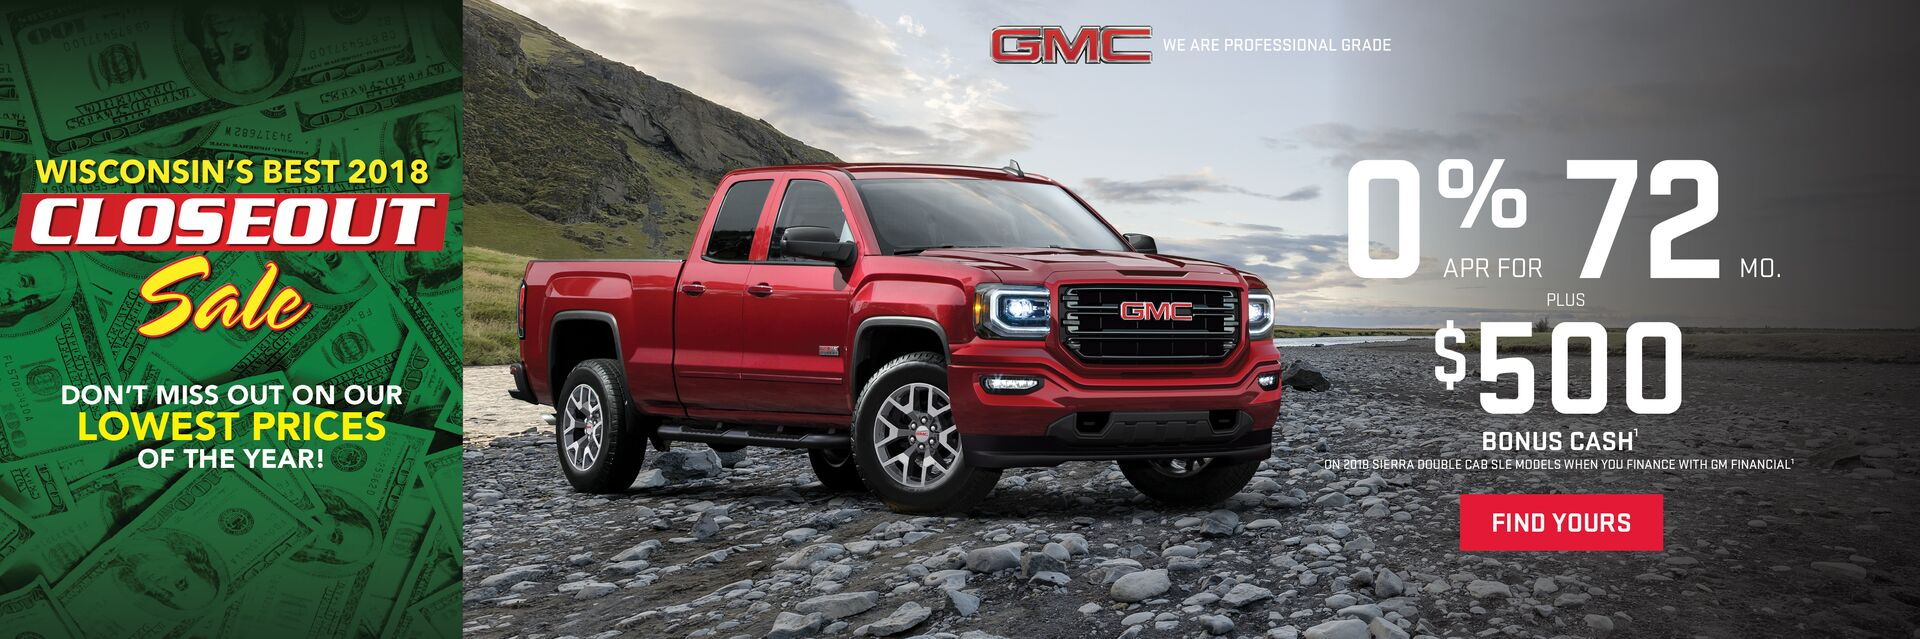 Great offers on new GMCs at Holiday Automotive in Fond du Lac, WI